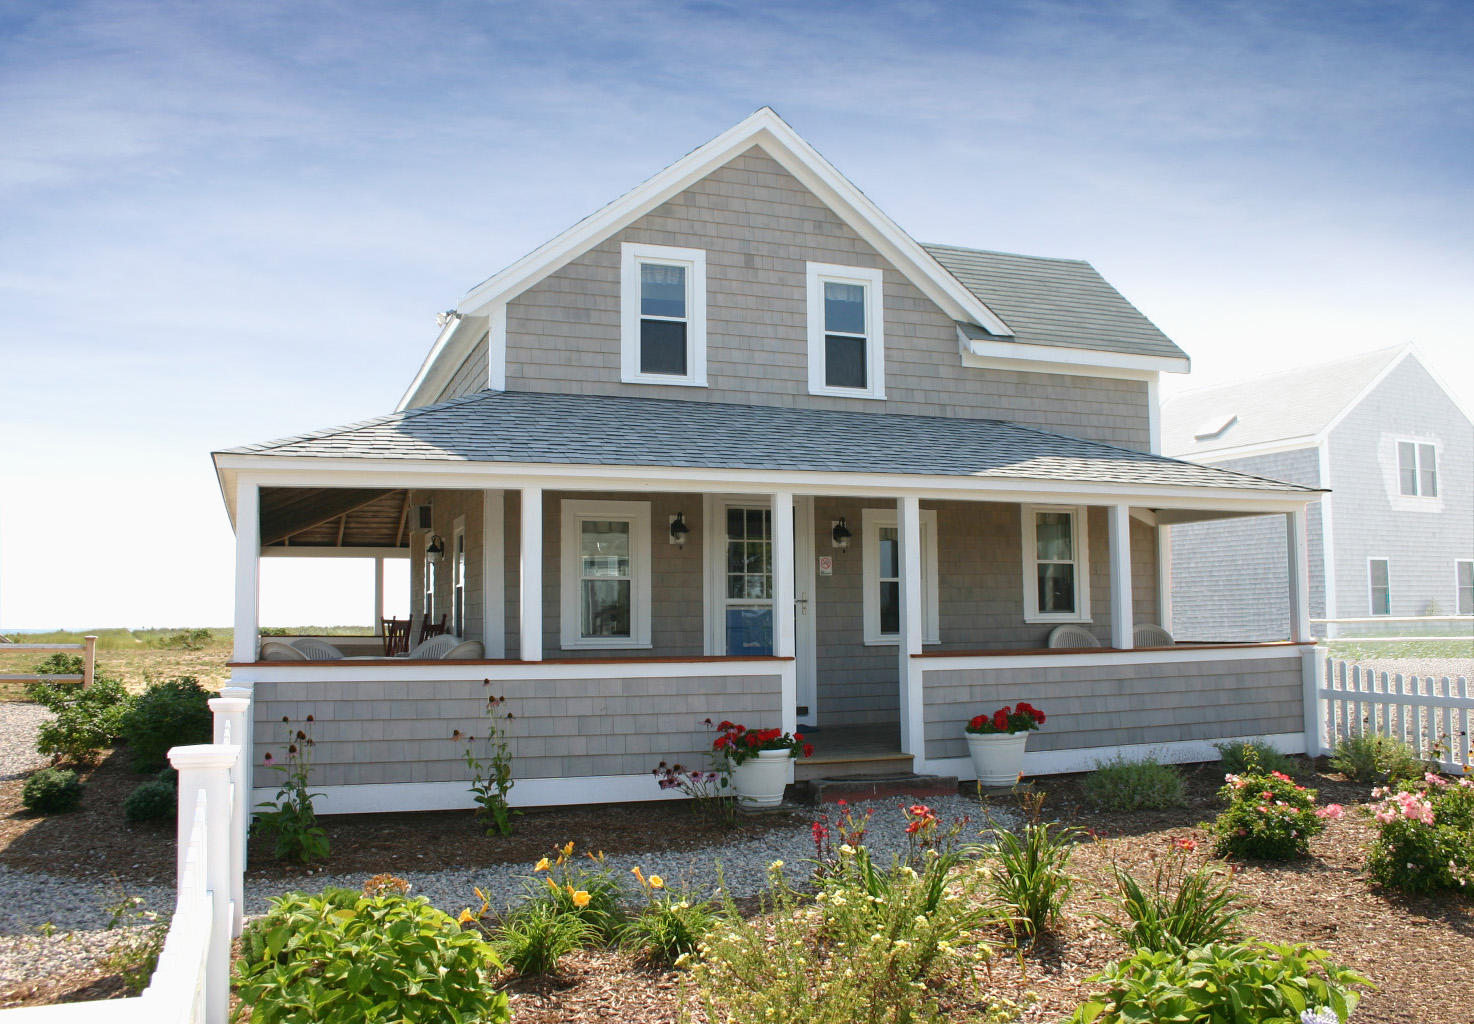 608 Shore Road, Truro MA, 02666 details